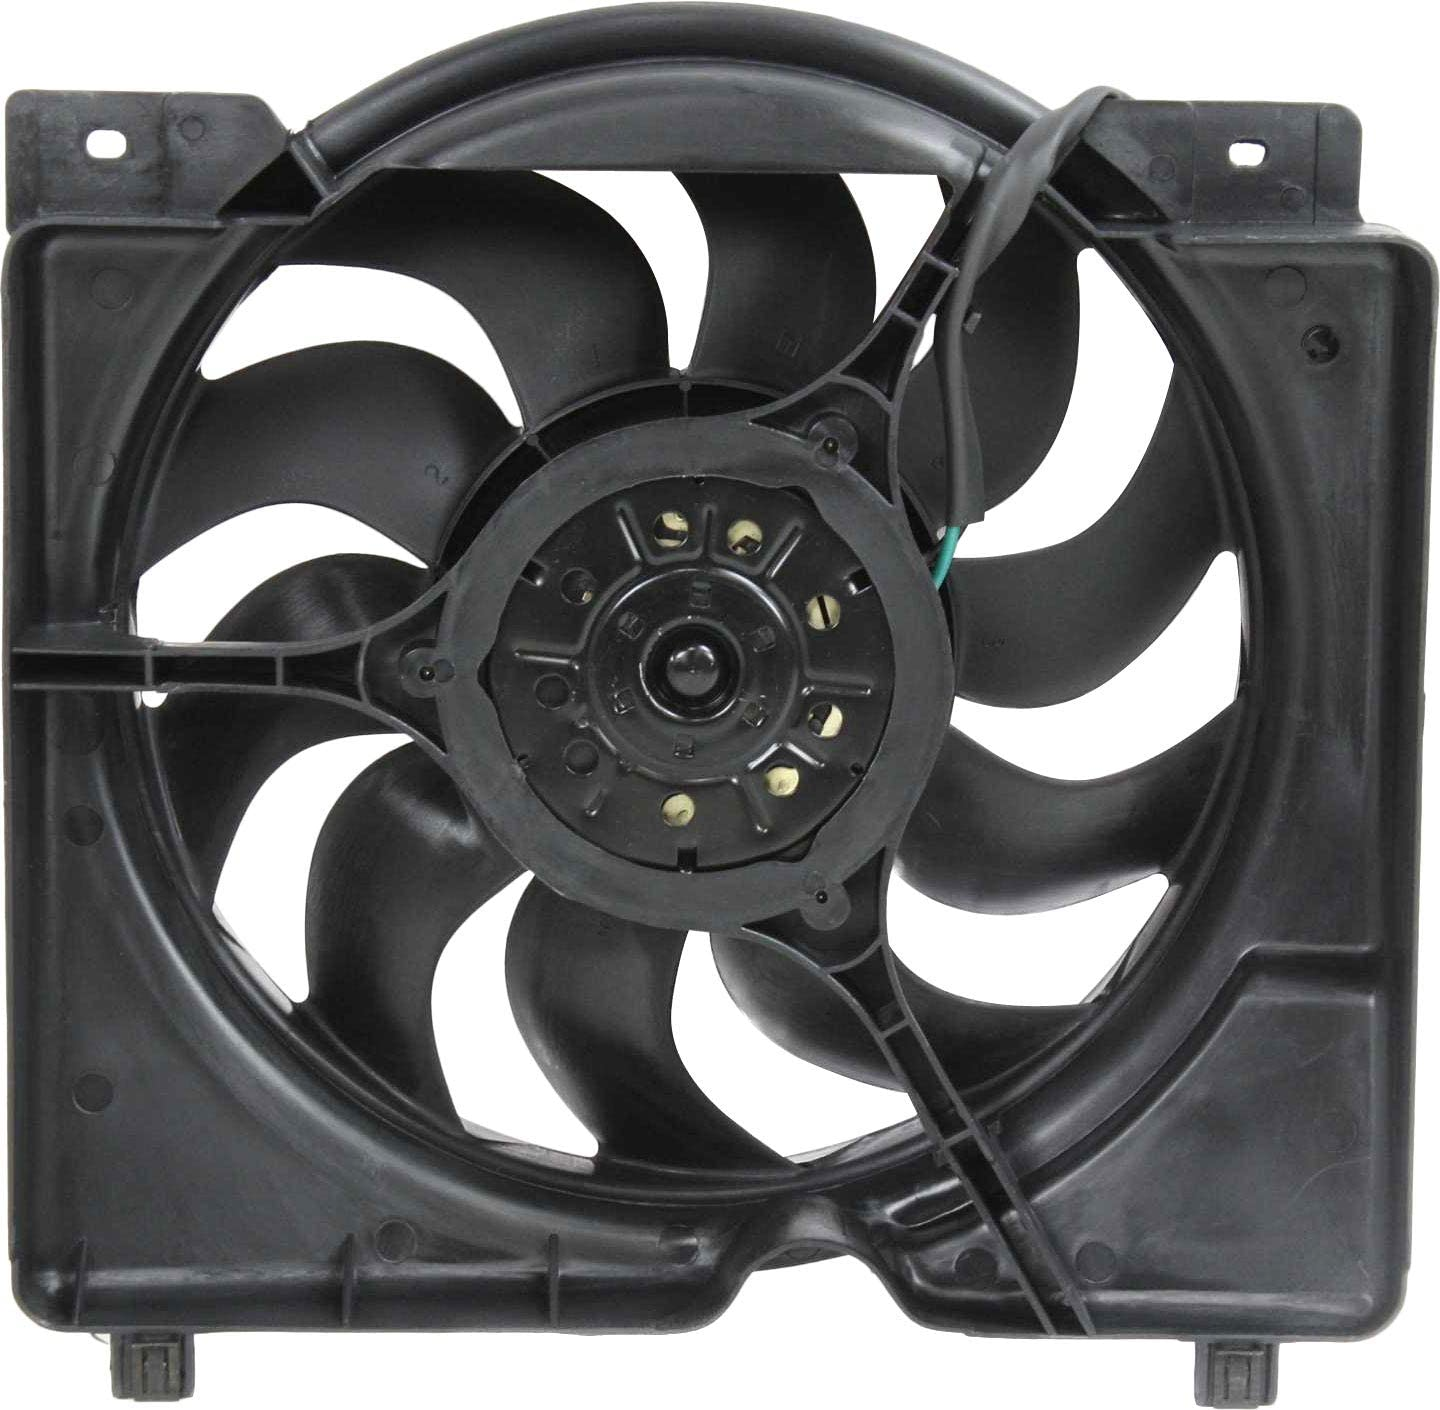 Radiator Fan Assembly for CHEROKEE 97-01 6cyl